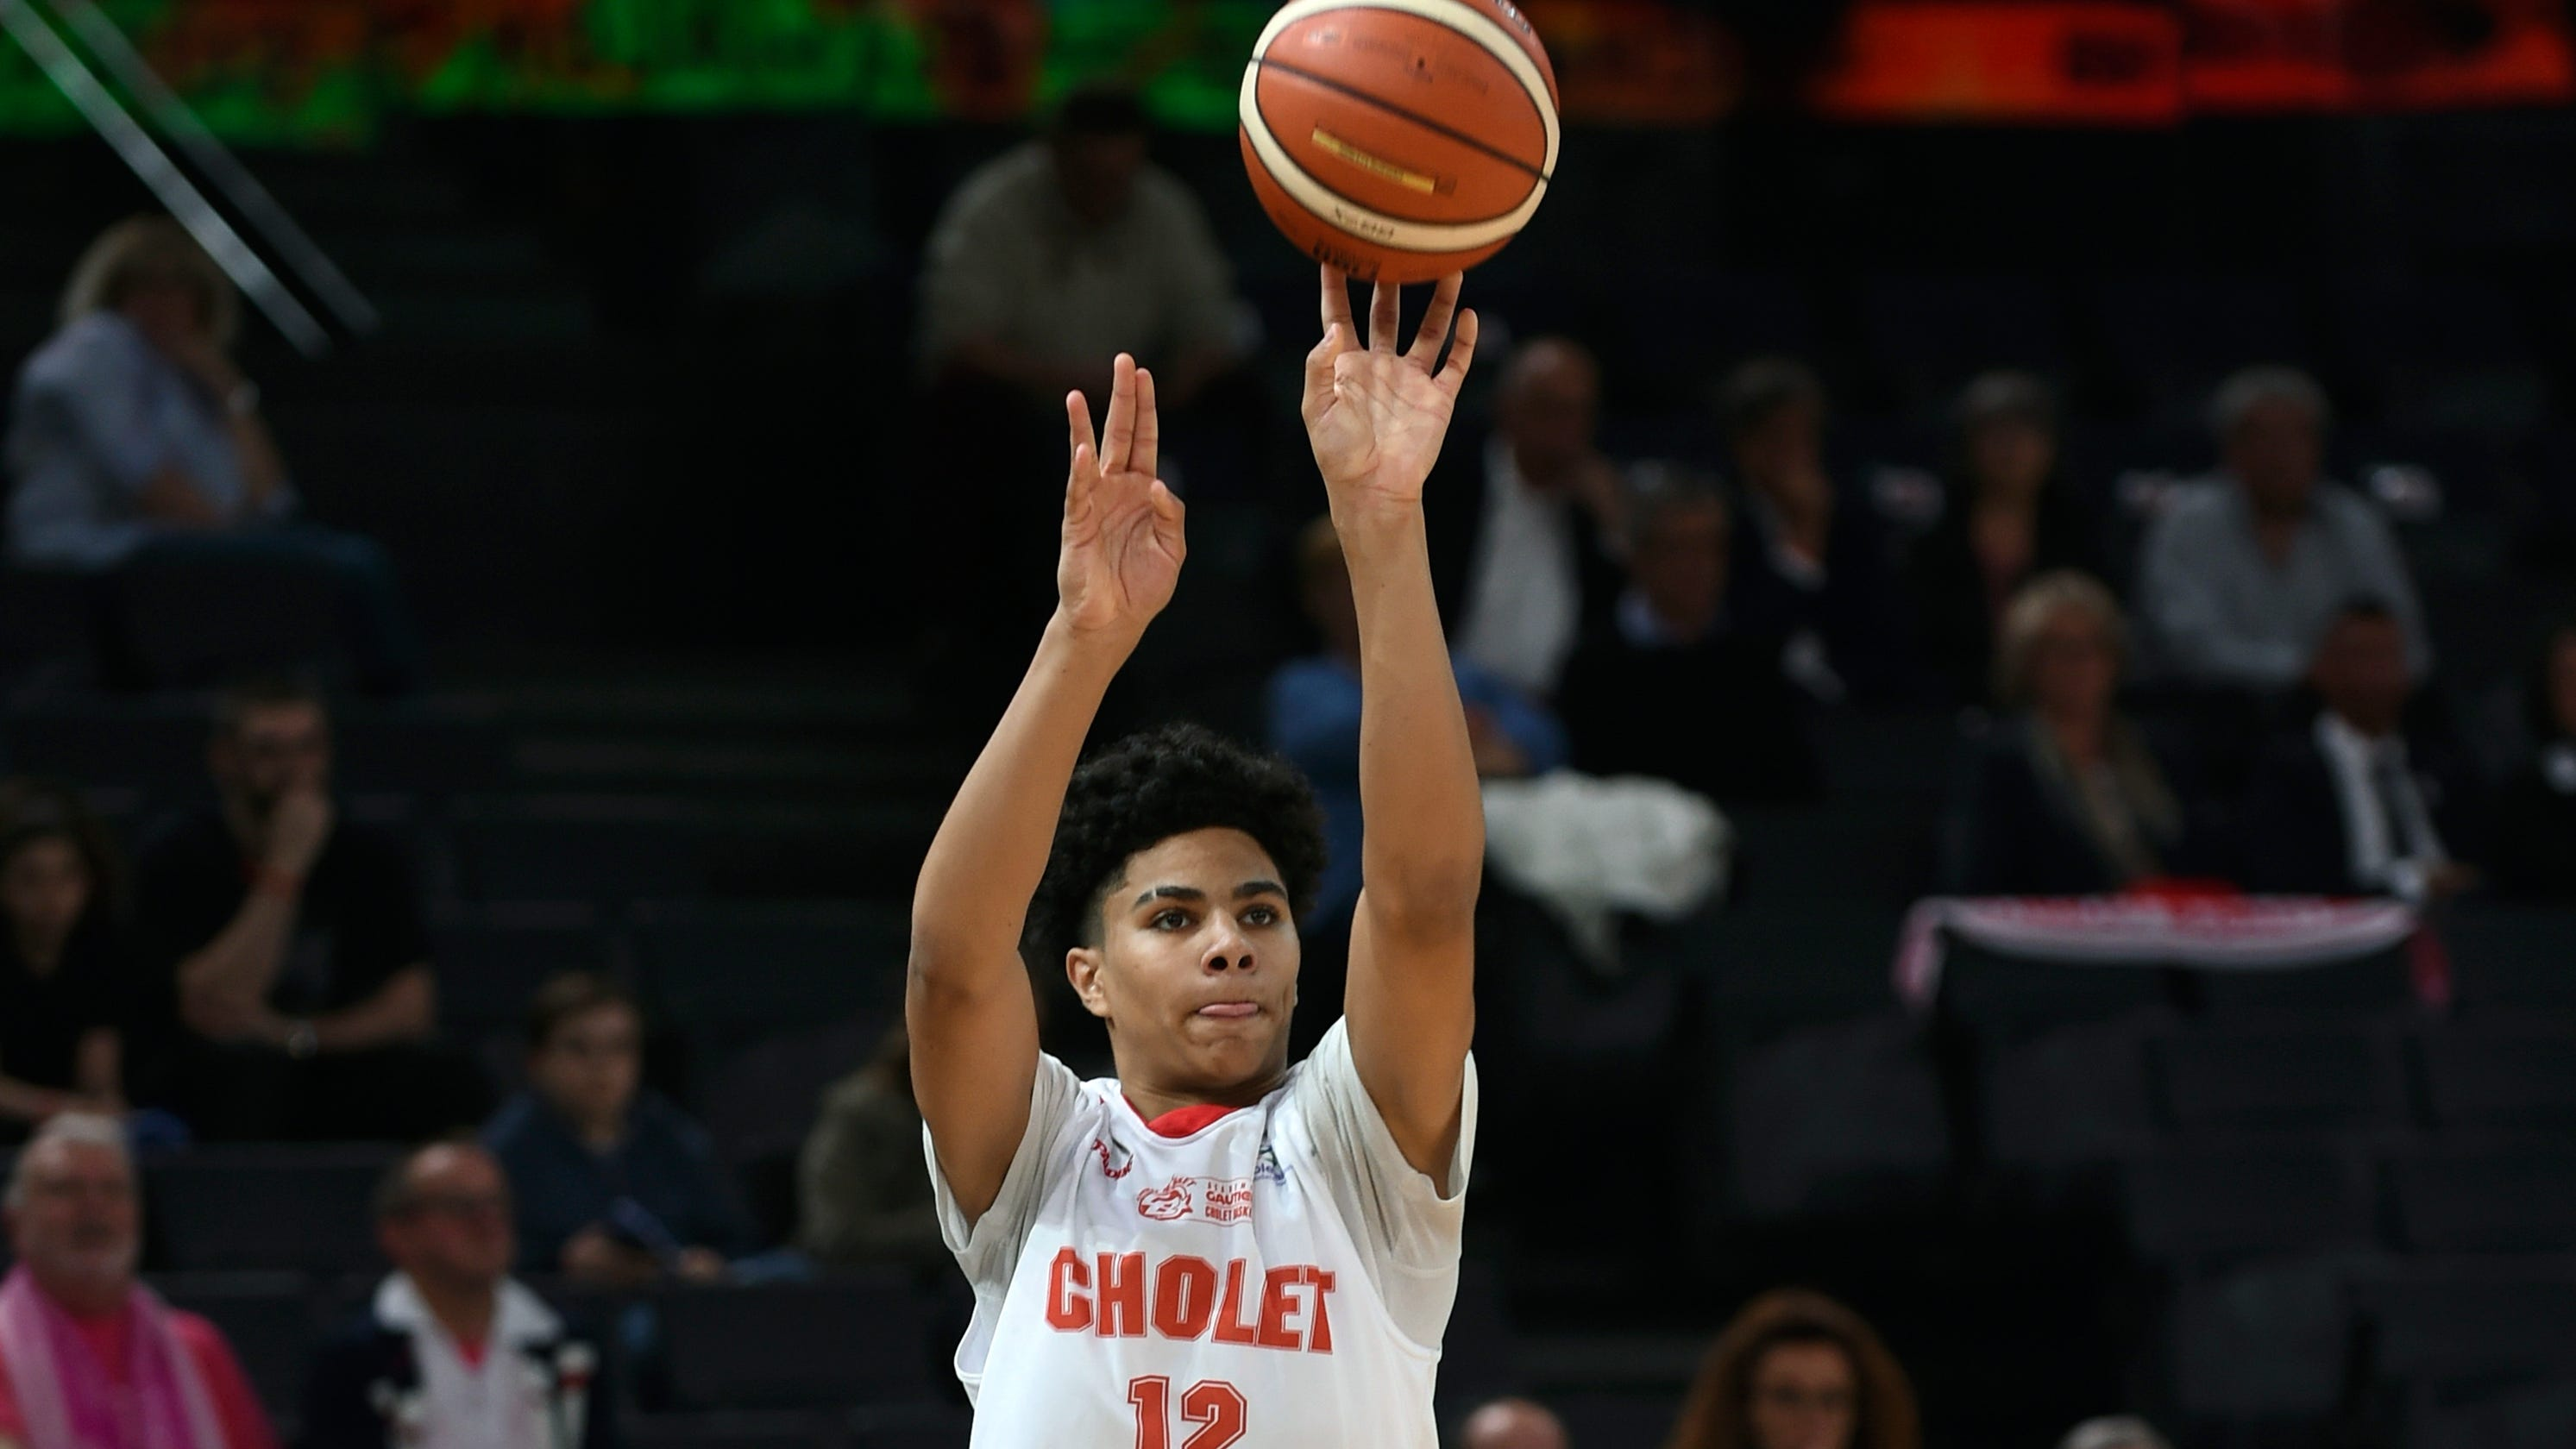 Pistons sign draft picks Hayes, Stewart, Bey and Lee to rookie deals